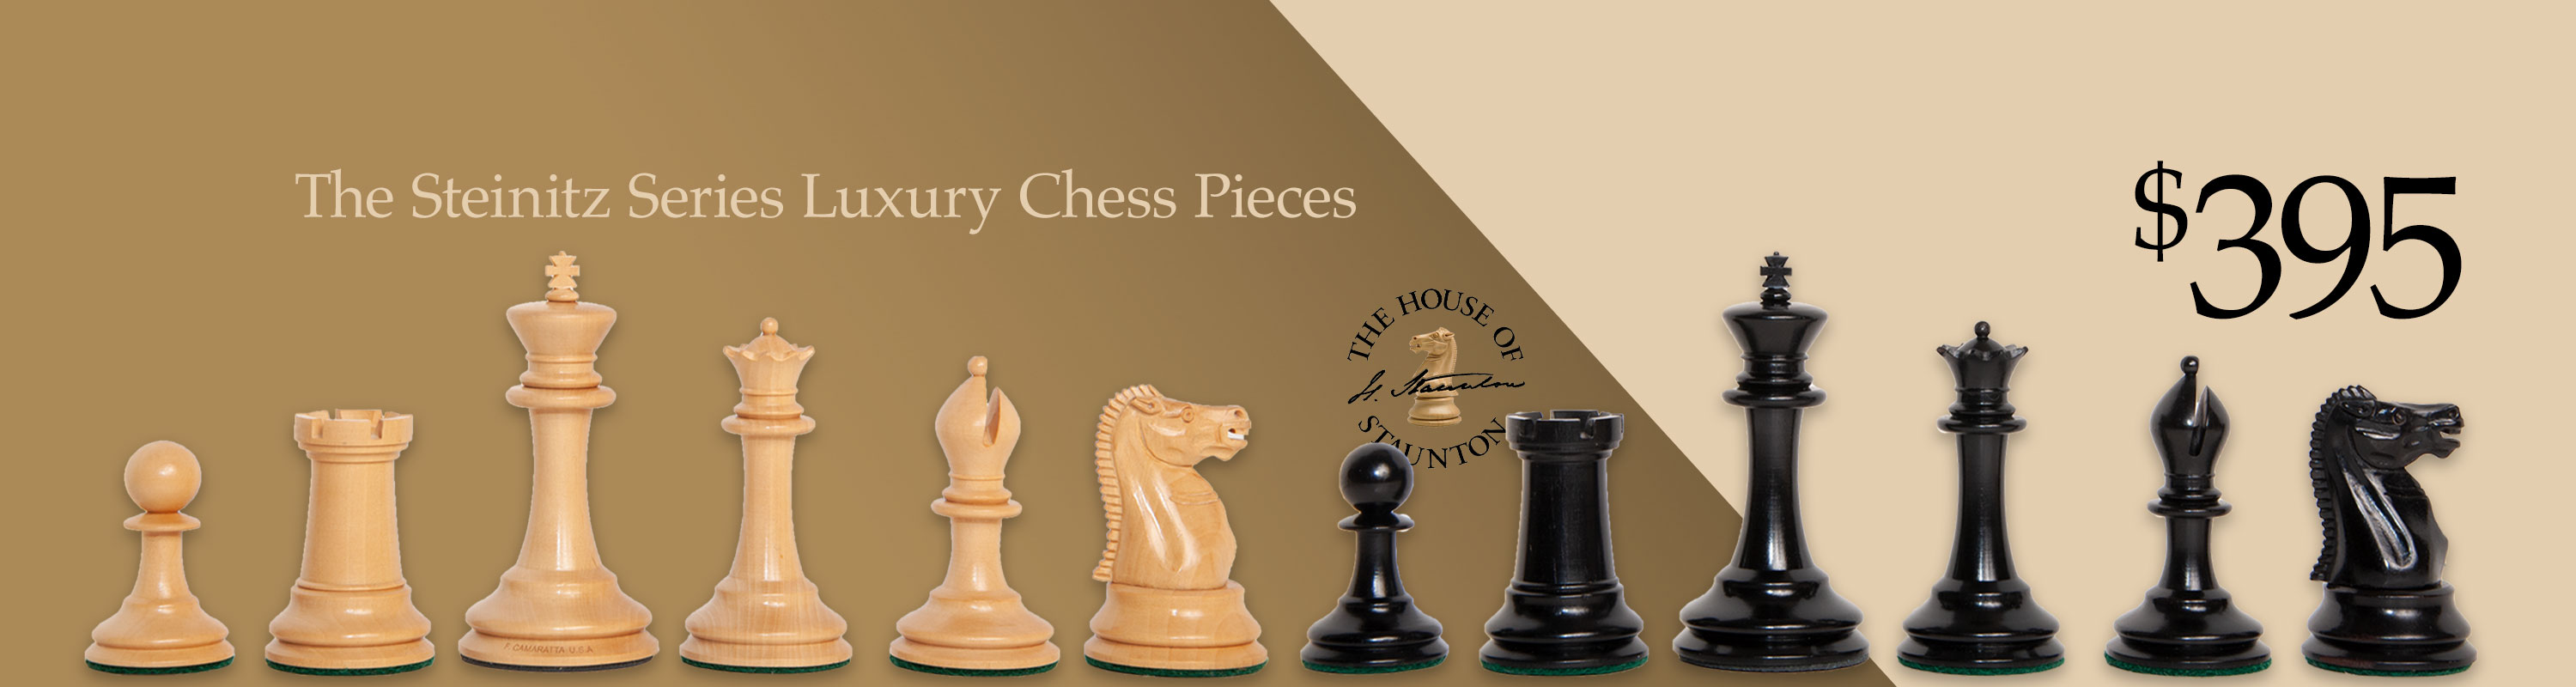 The Steinitz Series Luxury Chess Pieces - $395